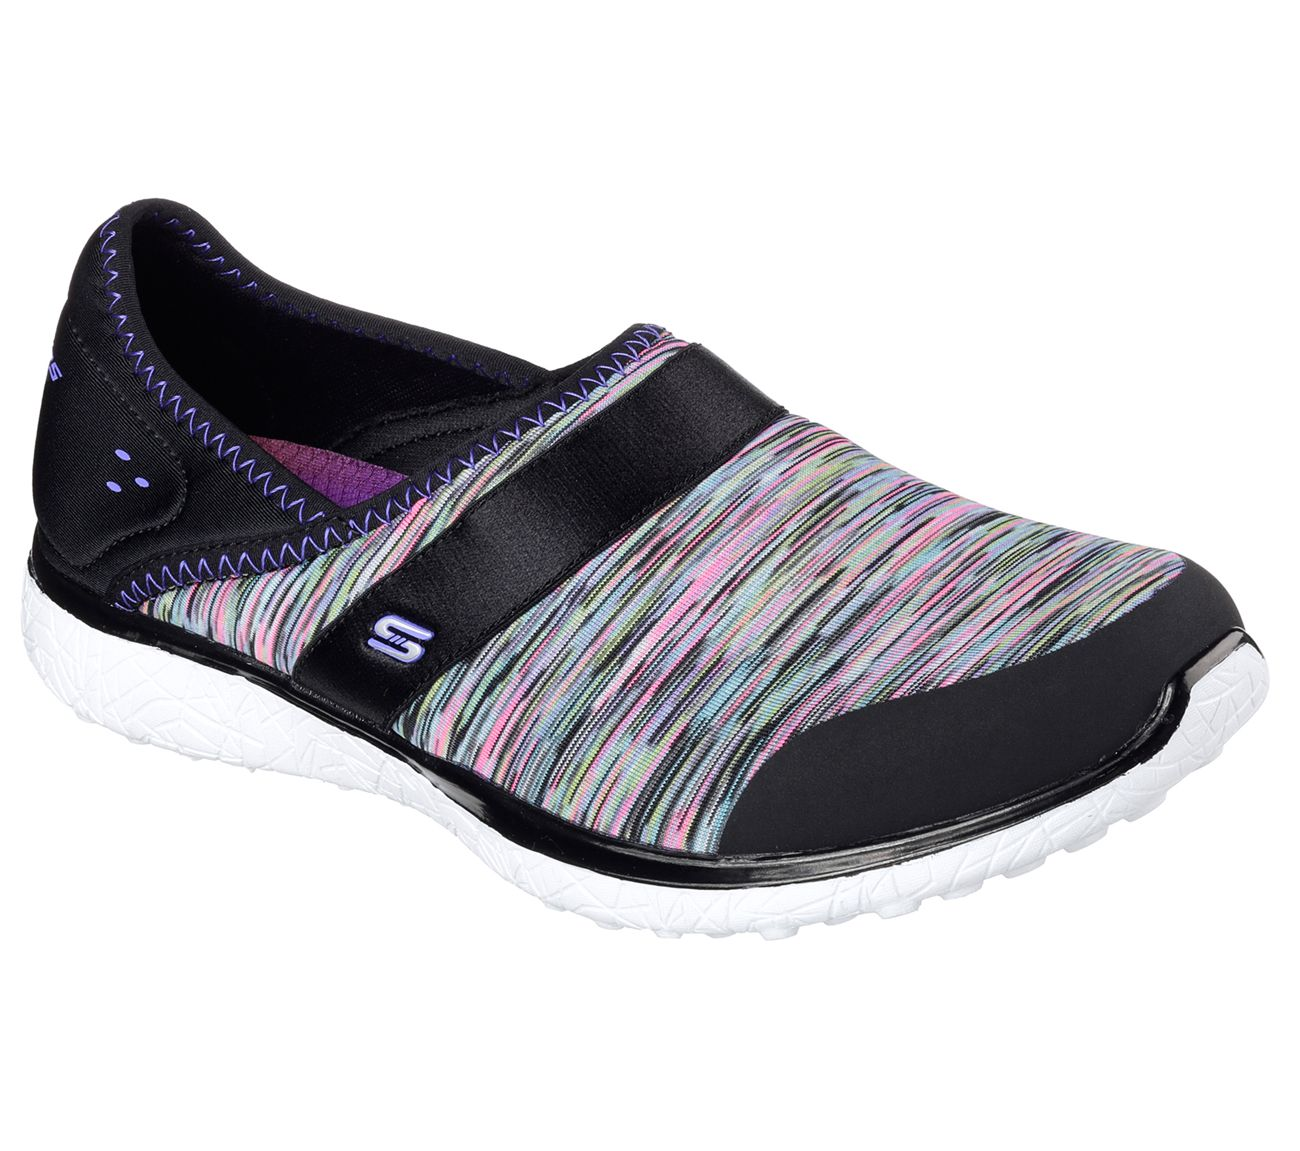 696ea16b Do amazing things in sporty style and lavish comfort with the SKECHERS  Microburst - Greatness shoe. Soft heathered jersey knit fabric and neoprene  fabric ...